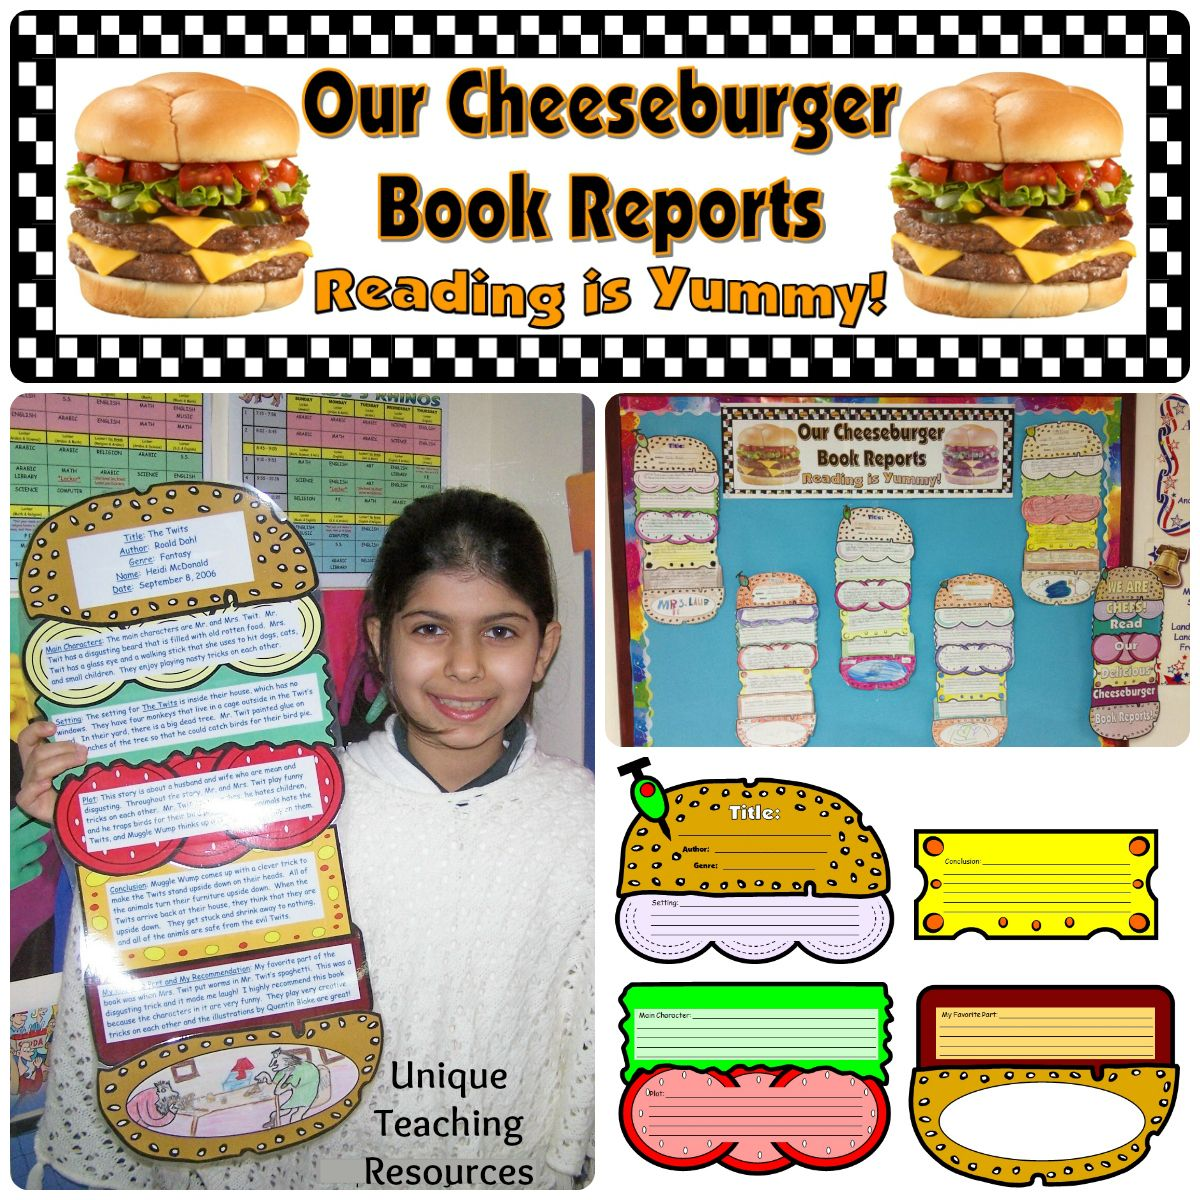 book report sandwich project Sandwich book report top bread layer: color this layer of your sandwich light brown and color the olive green cut this template out along the solid black lines.